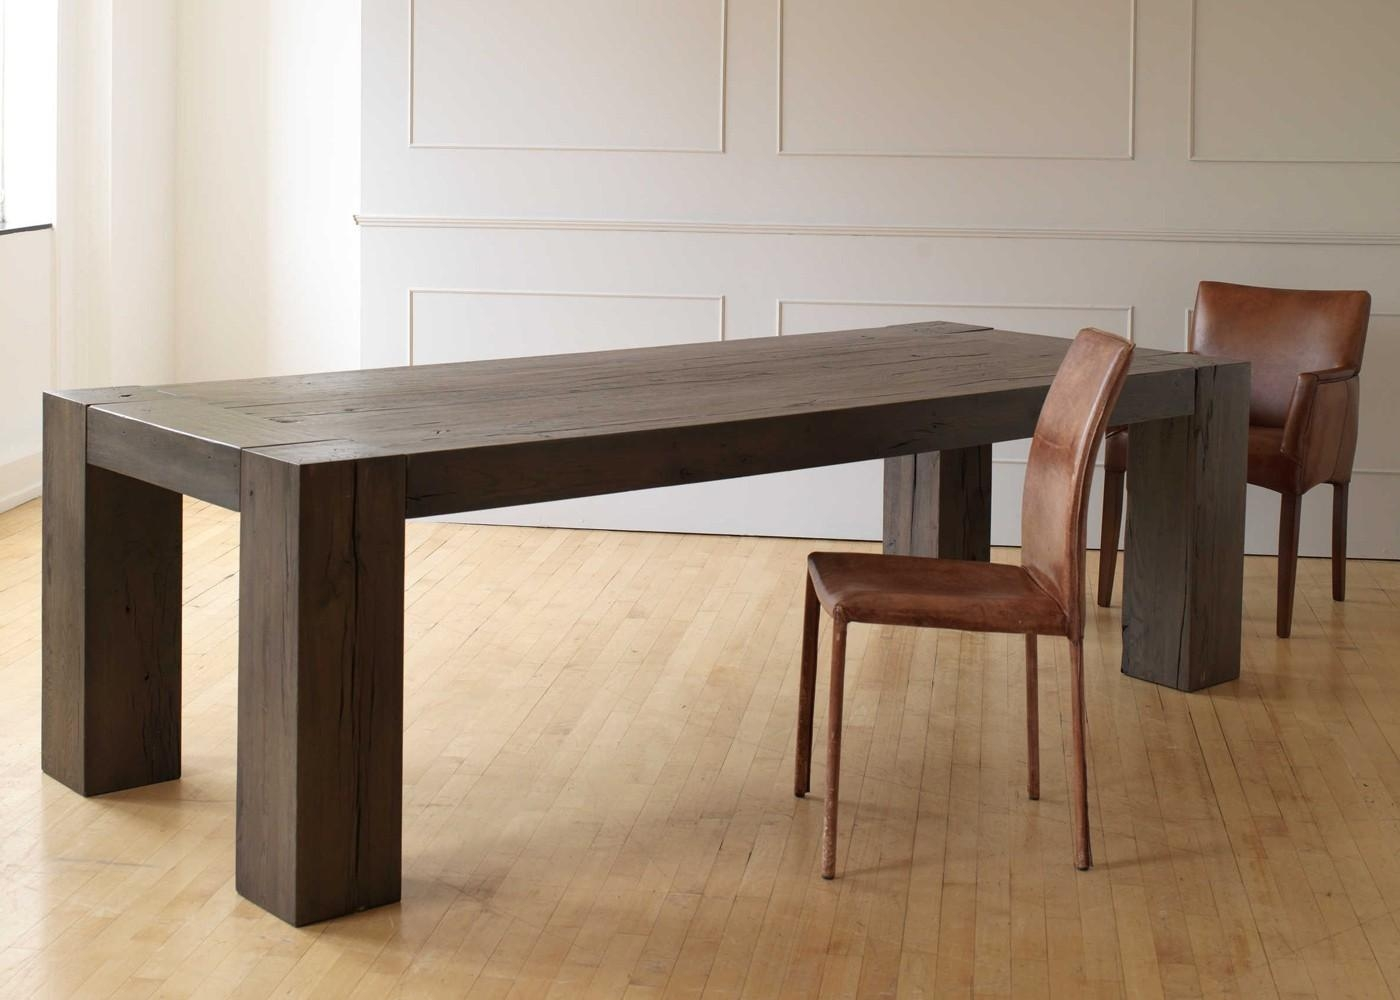 Heal's Umbrian Table Within Dining Table With Sofa Chairs (View 16 of 20)